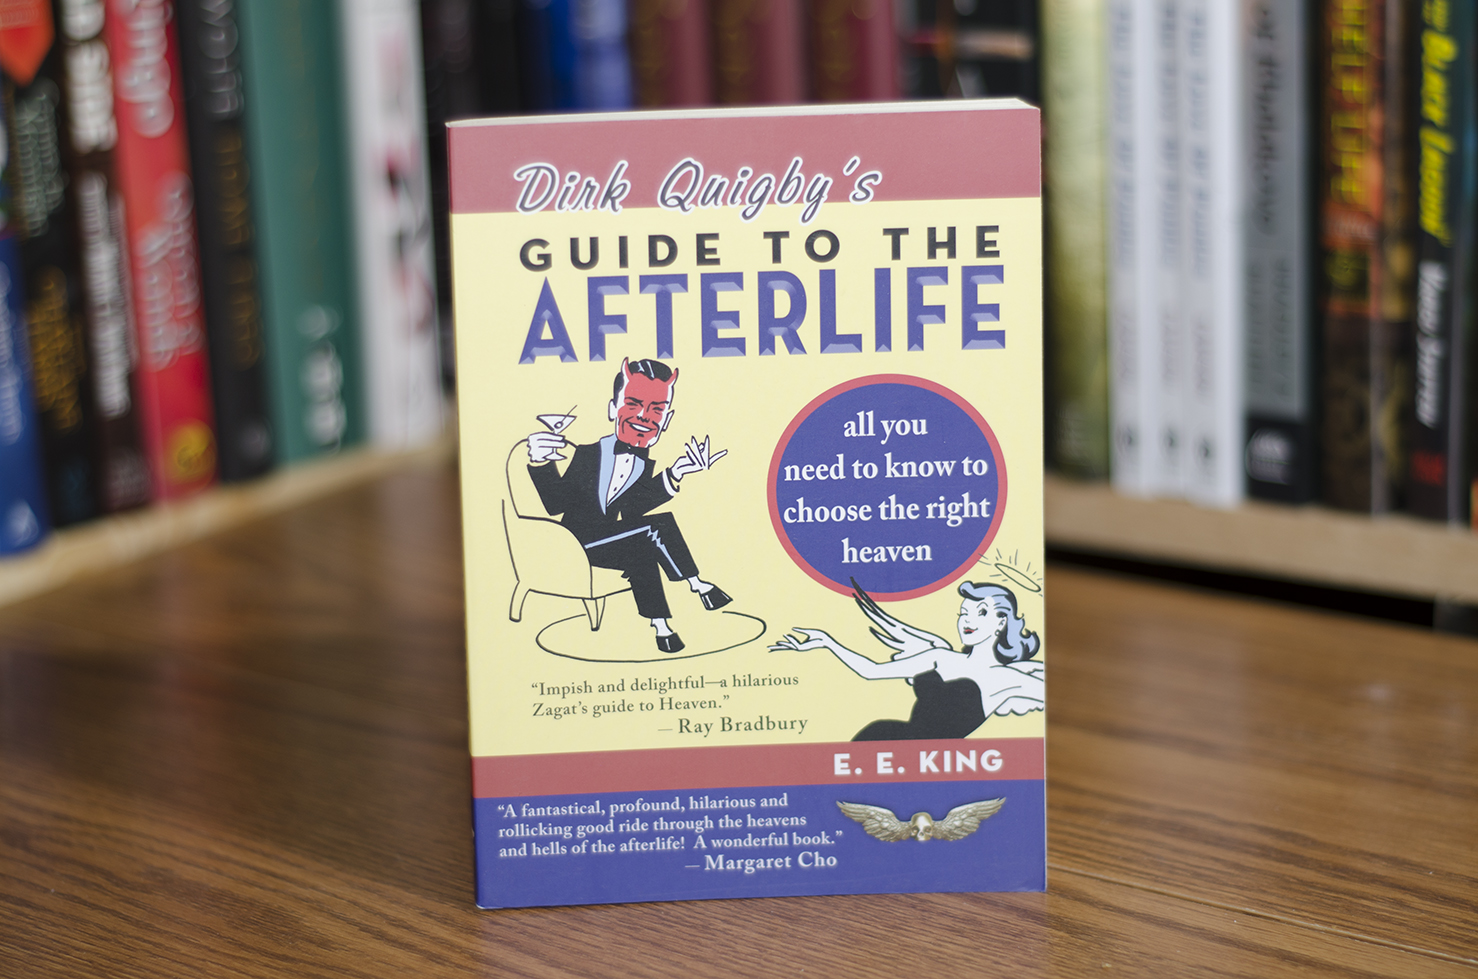 Guide to the Afterlife